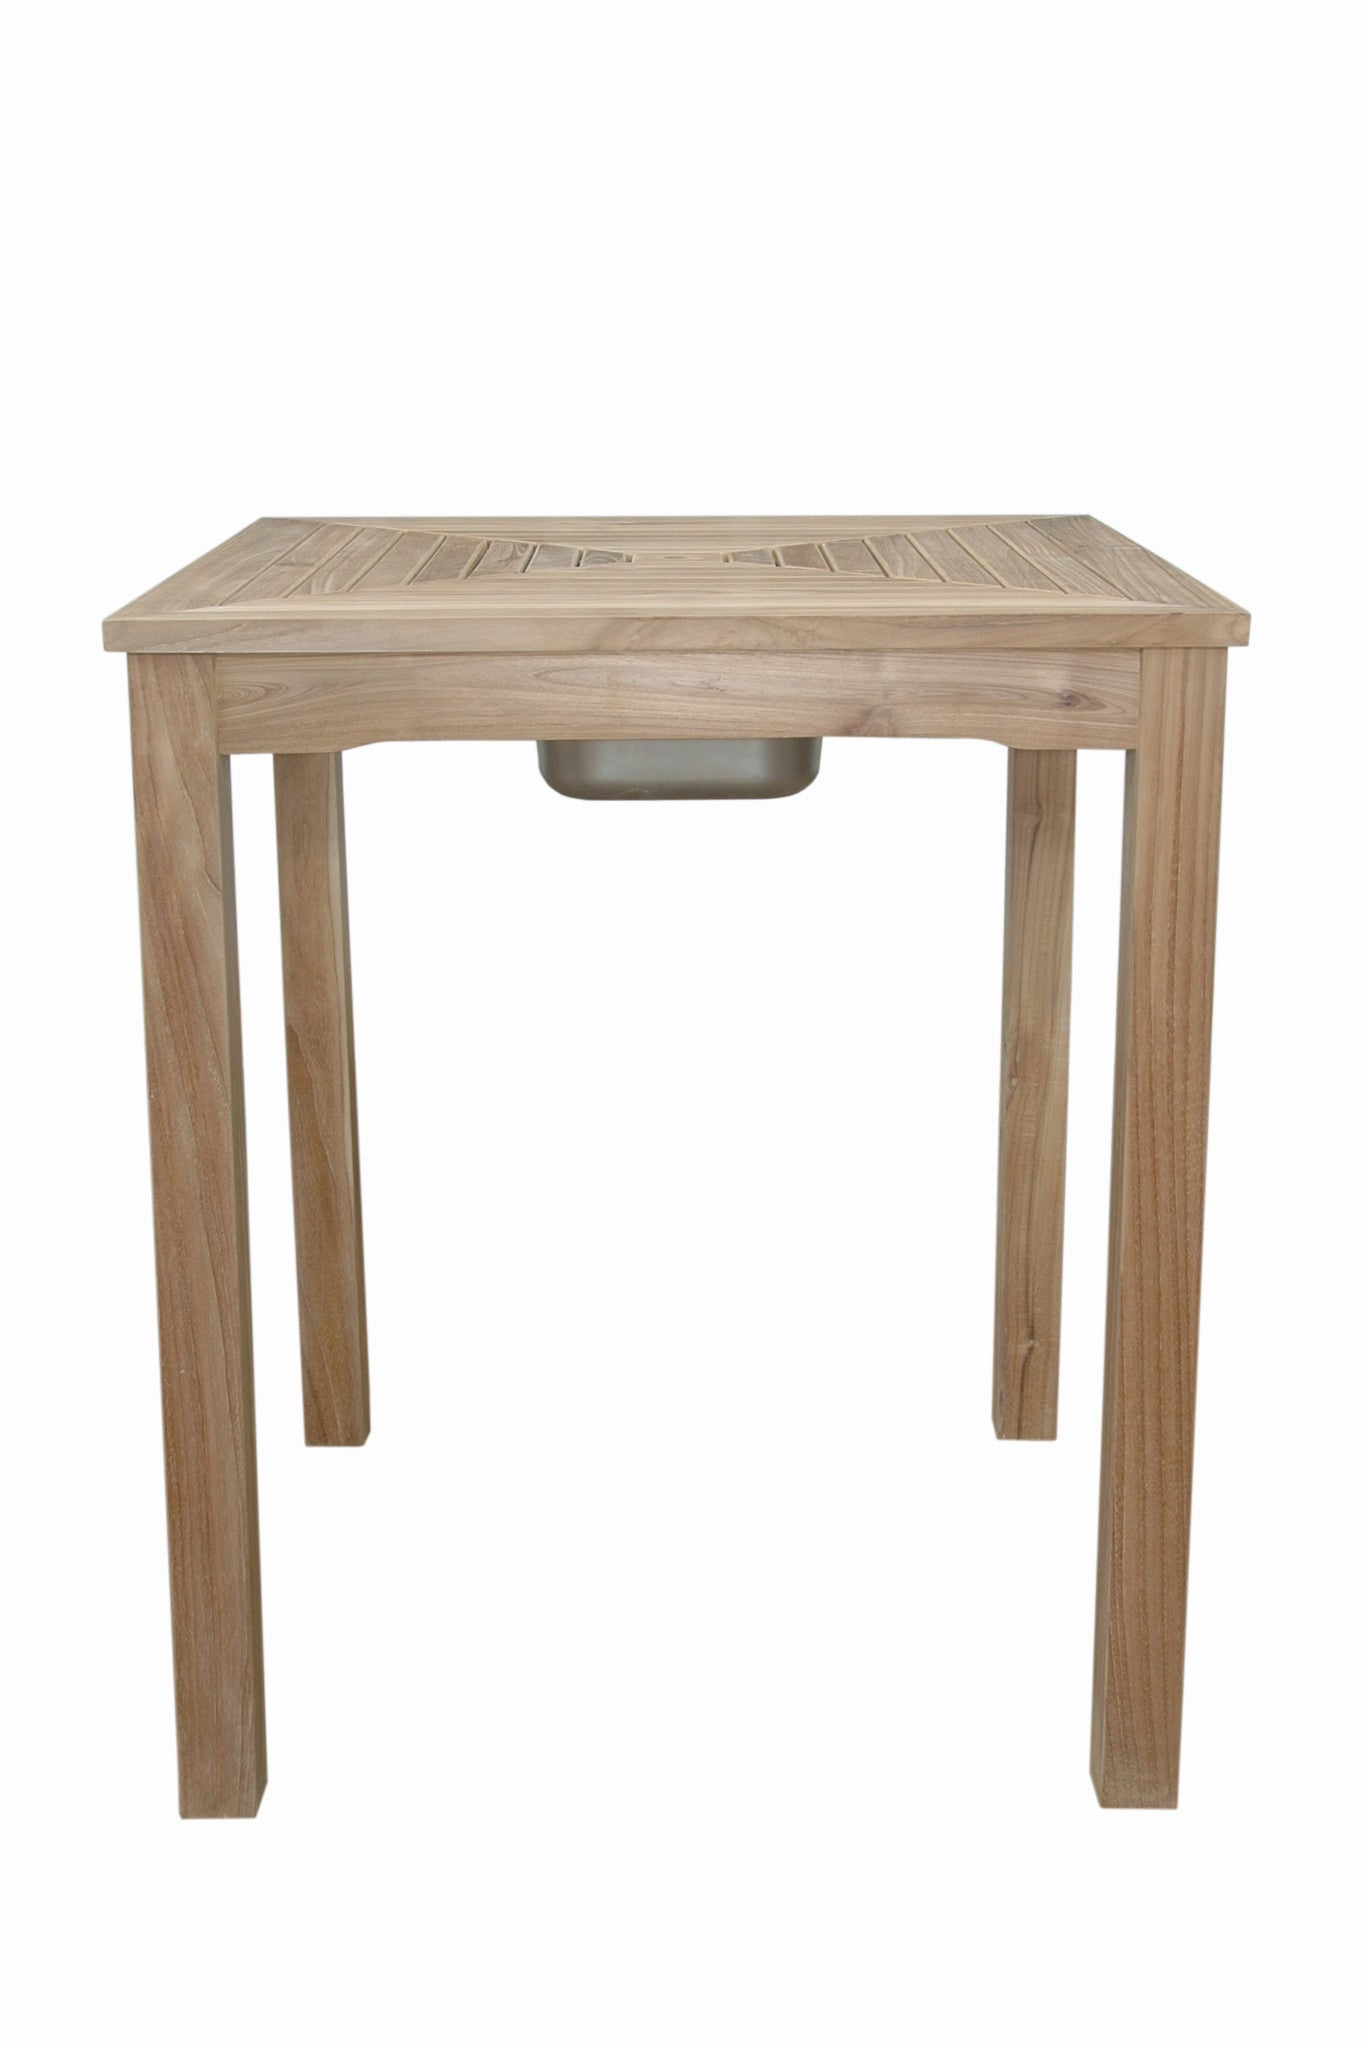 Anderson Teak | Chatsworth Ice Chiller Bar Table |TB 3636BT   Furniture    Teakwood